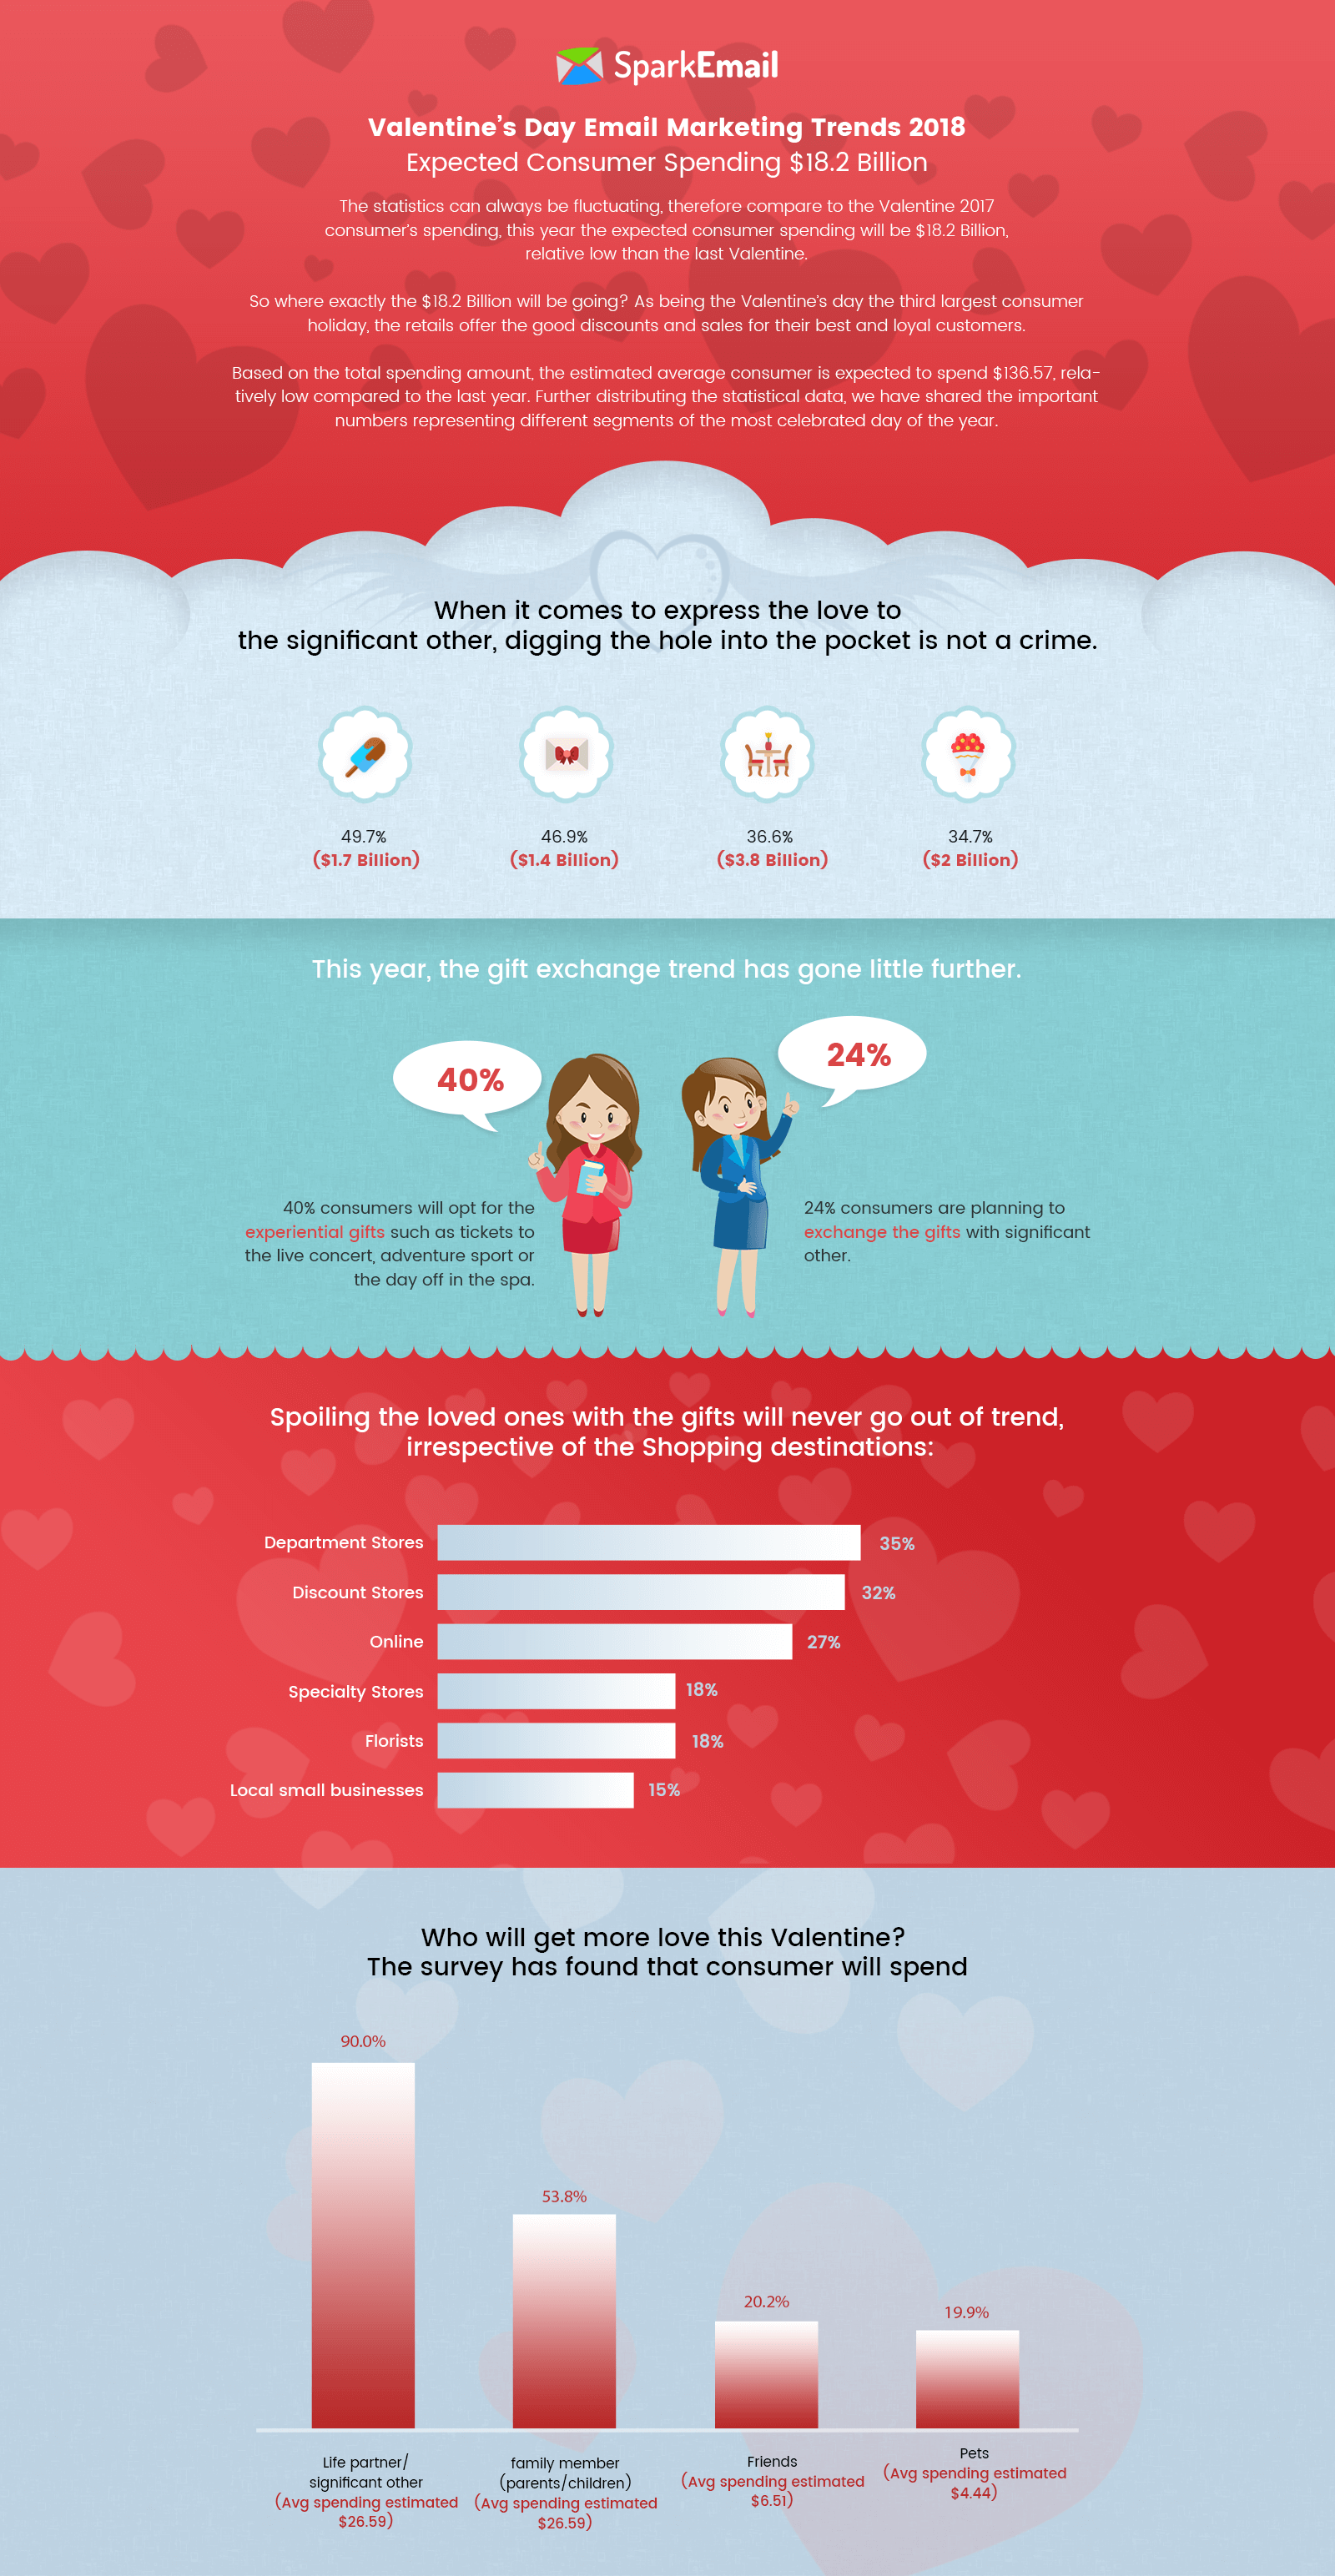 Valentine's Day Email Marketing Trends 2018